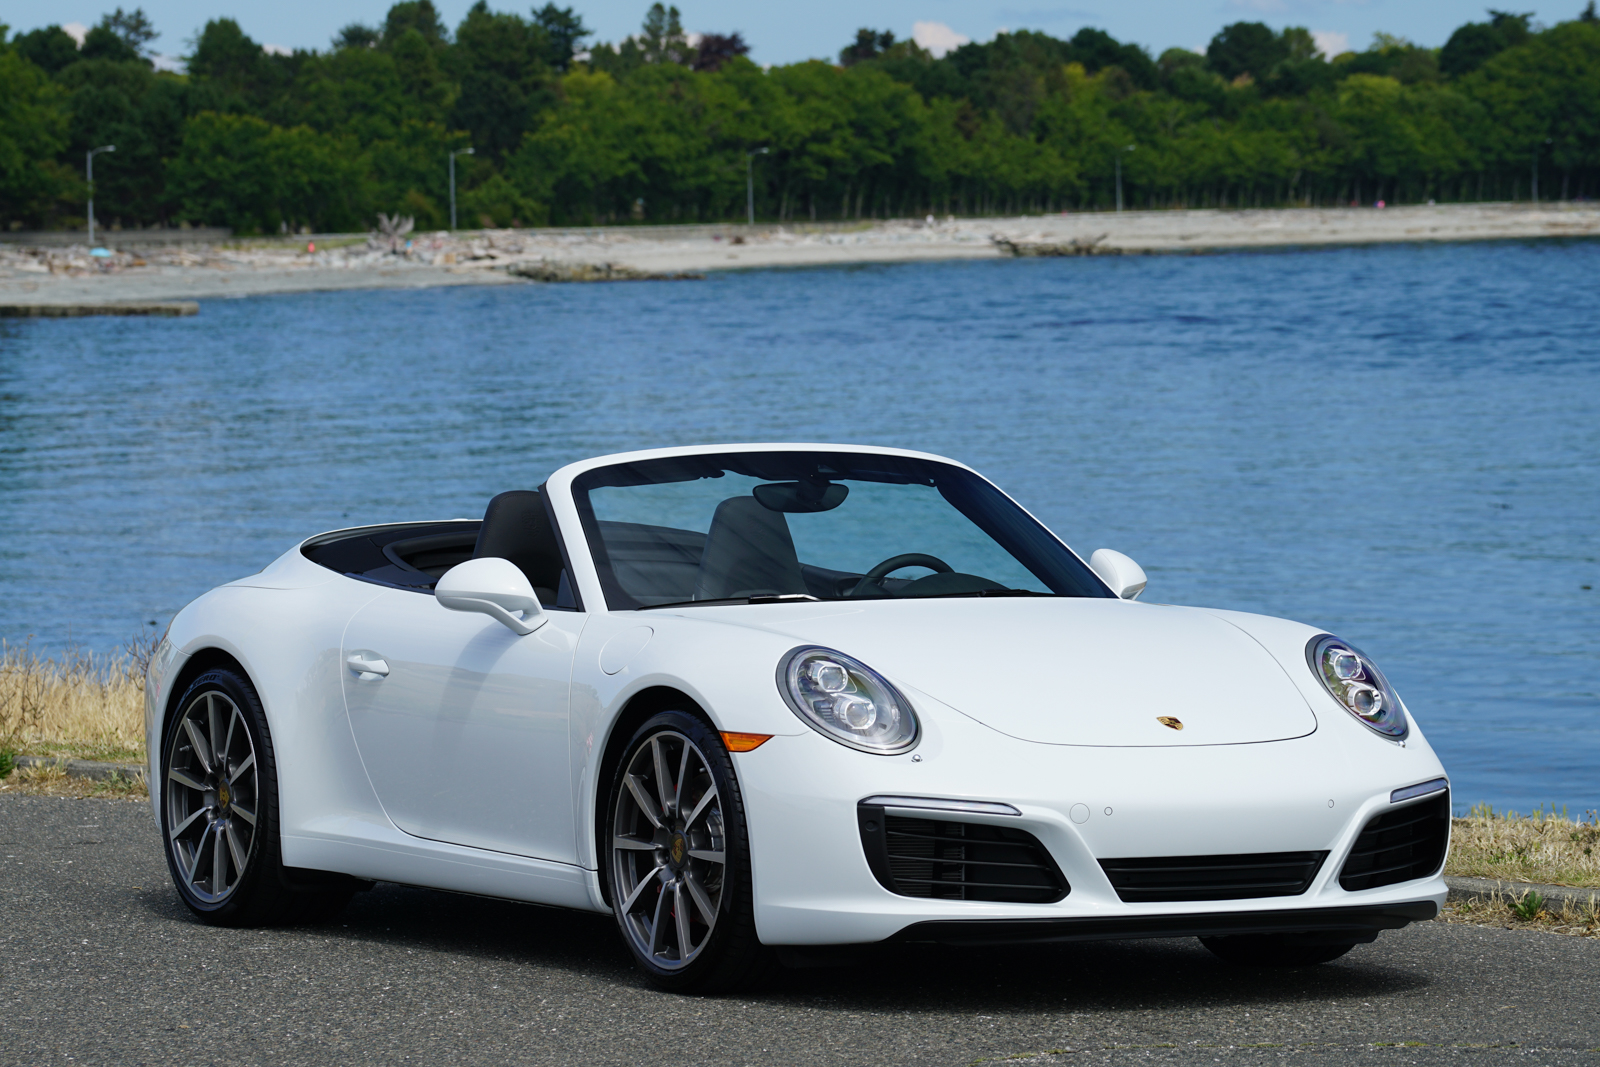 2017 porsche 911 carrera s cabriolet for sale silver arrow cars ltd. Black Bedroom Furniture Sets. Home Design Ideas